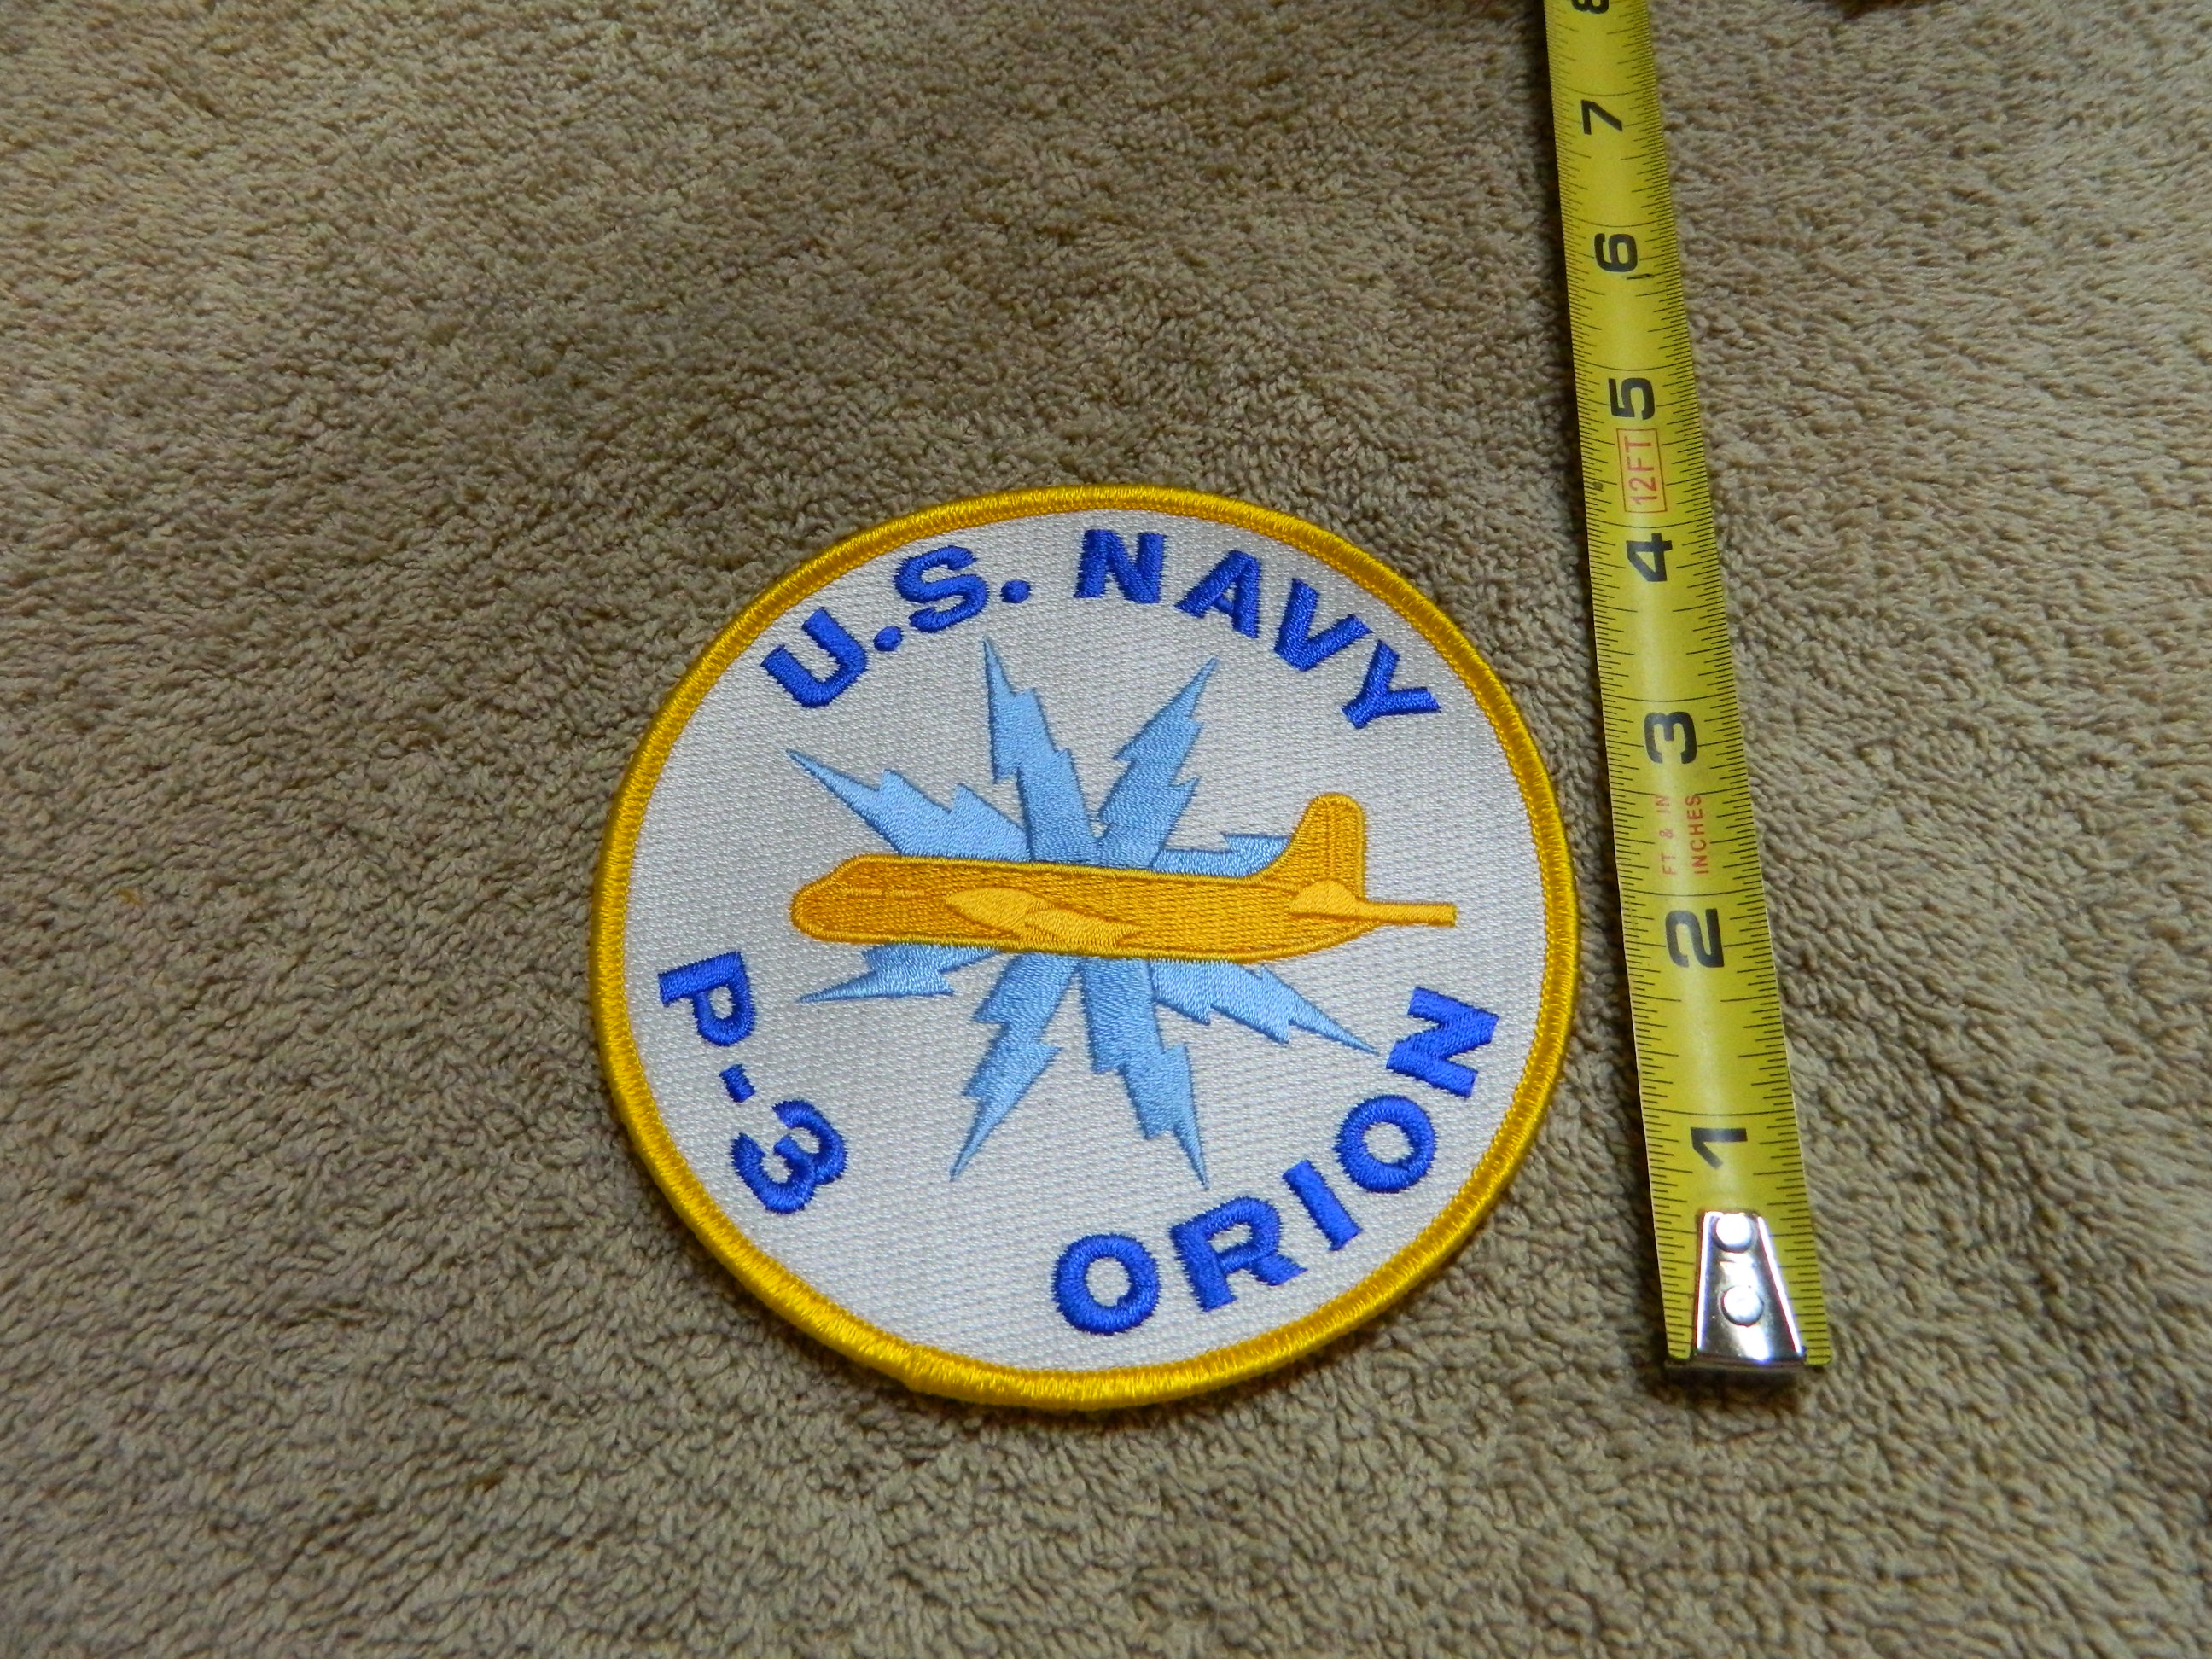 USN: U.S. NAVY P-3 ORION - Lrg. Color Patch